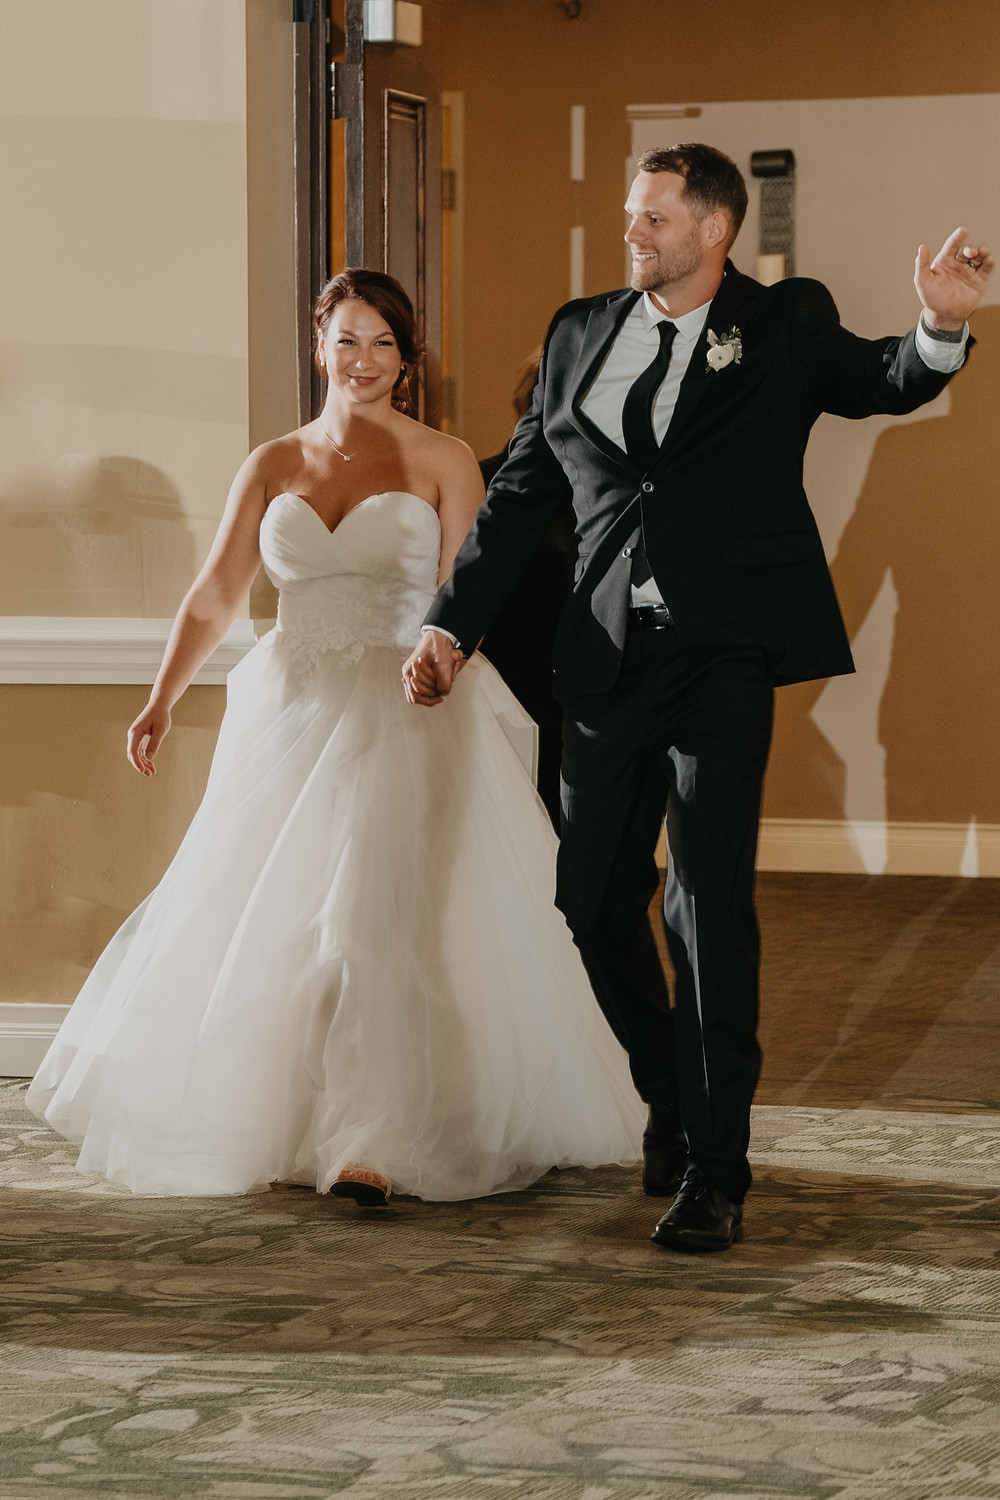 Bride and groom arriving to reception. Photographed by Nicole Leanne Photography.